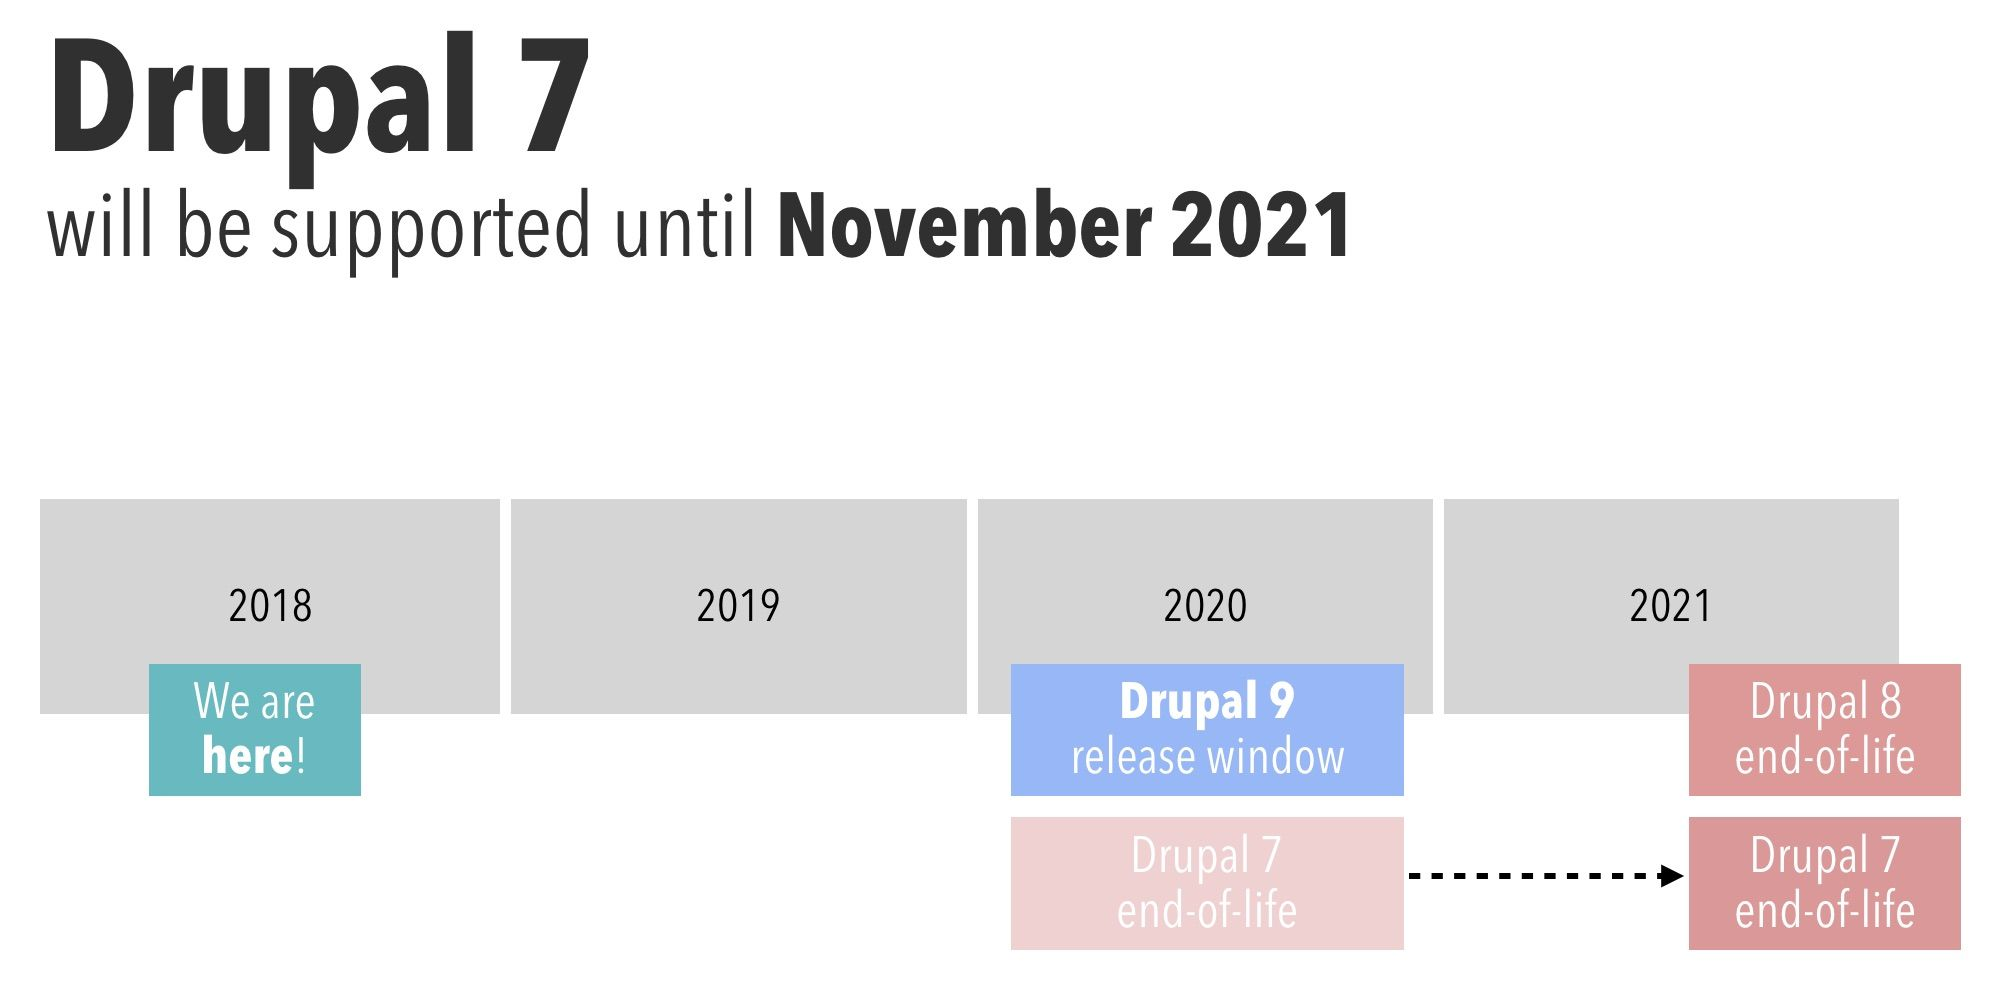 drupal-7-will-be-supported-until-november-2021